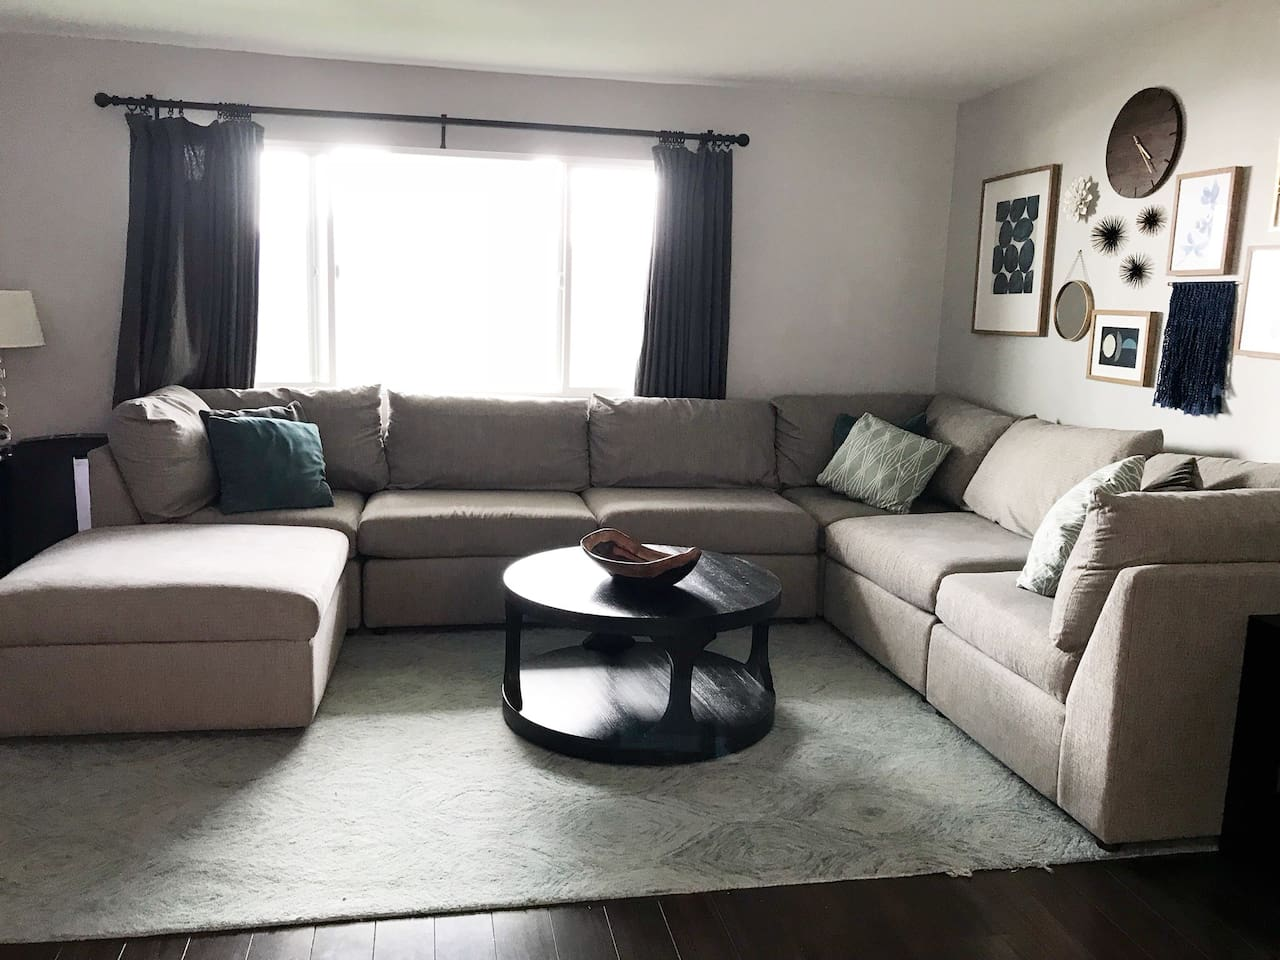 Spacious living room. Portable air conditioner in room.